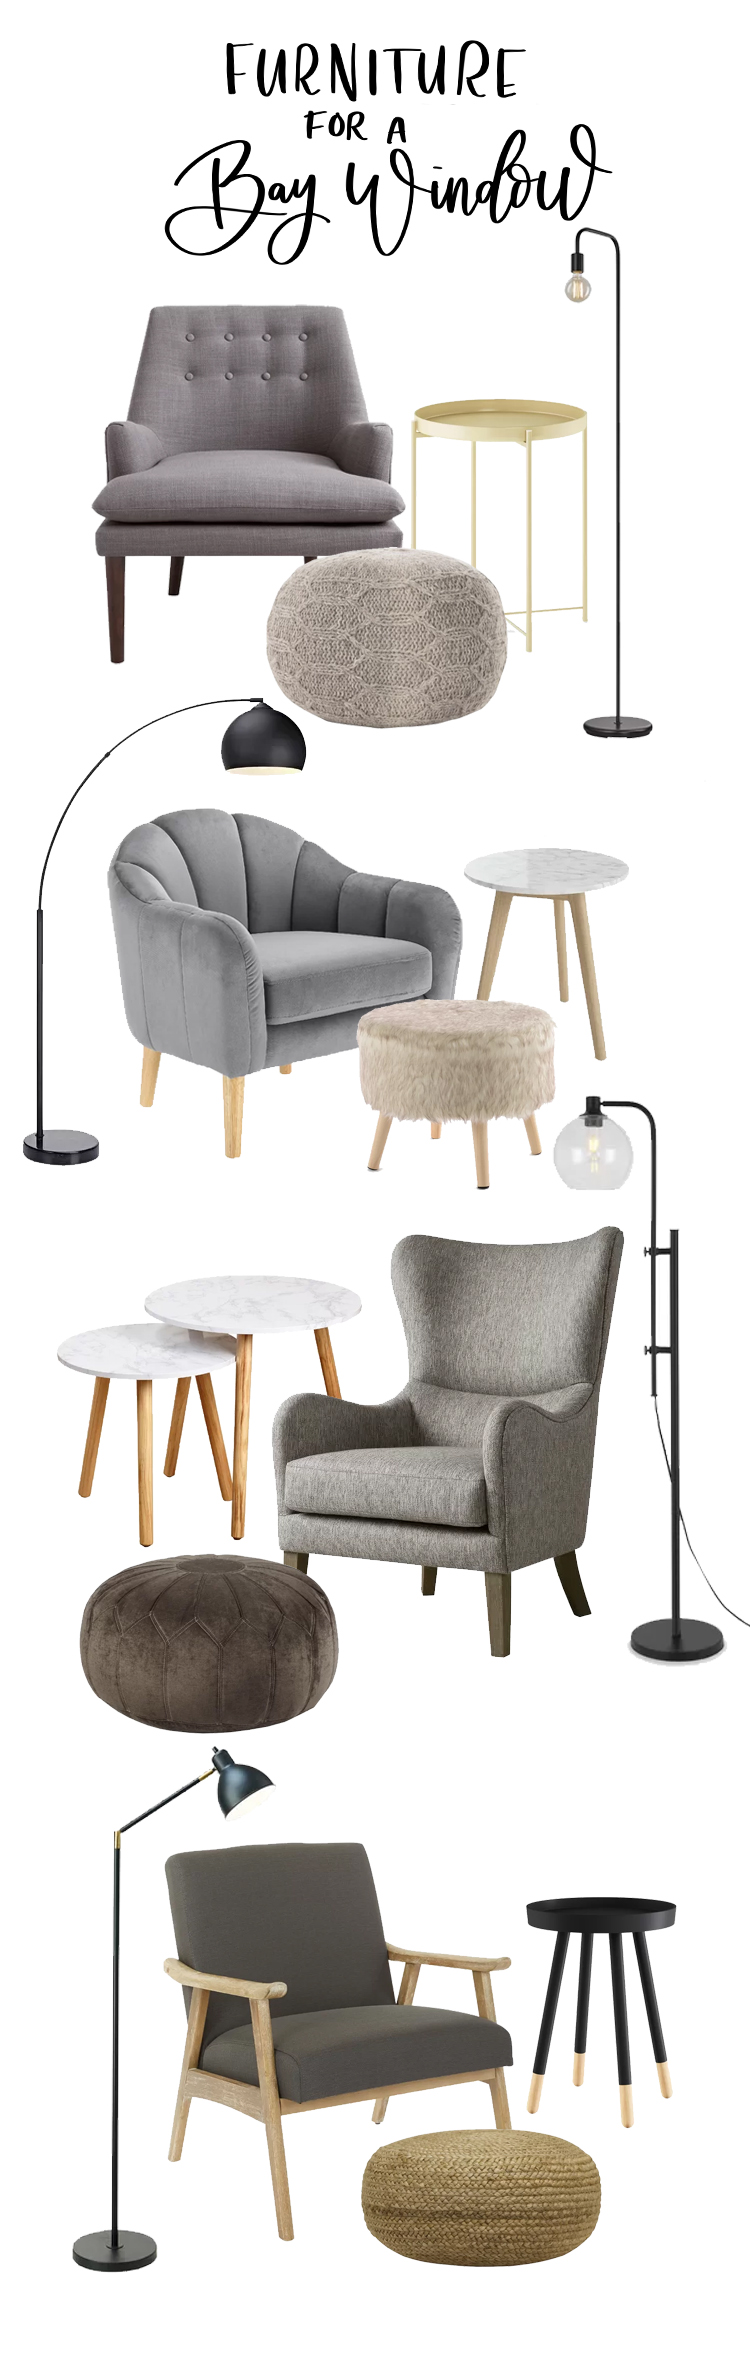 Choosing furniture for a bay window reading nook (with links)